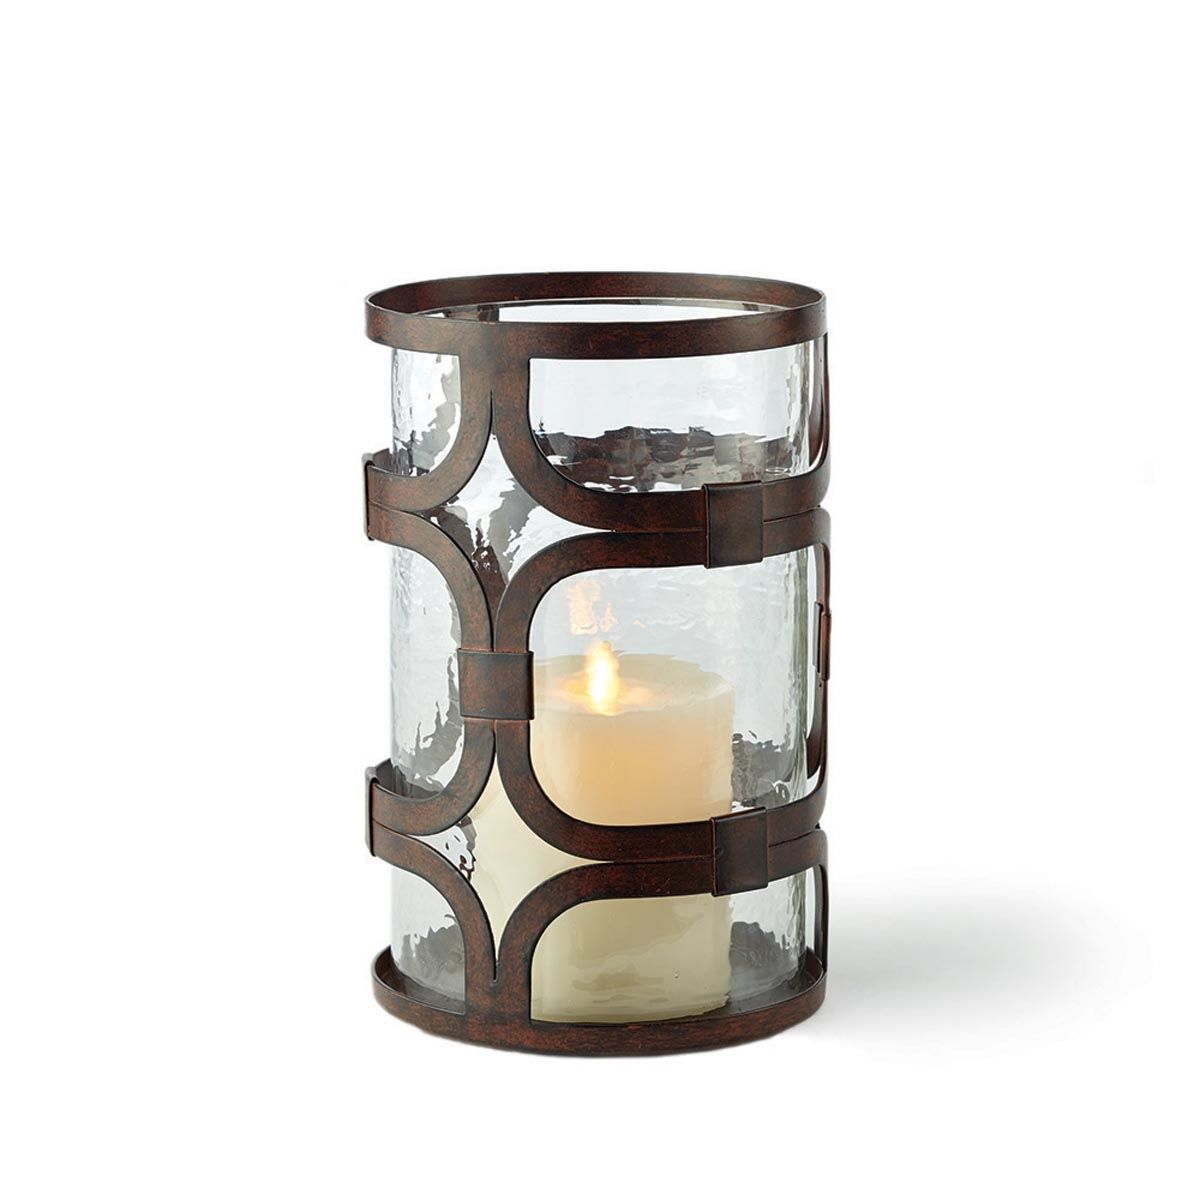 "Castillian Geometric 10.5""Hurricane Plum & Post Candle"